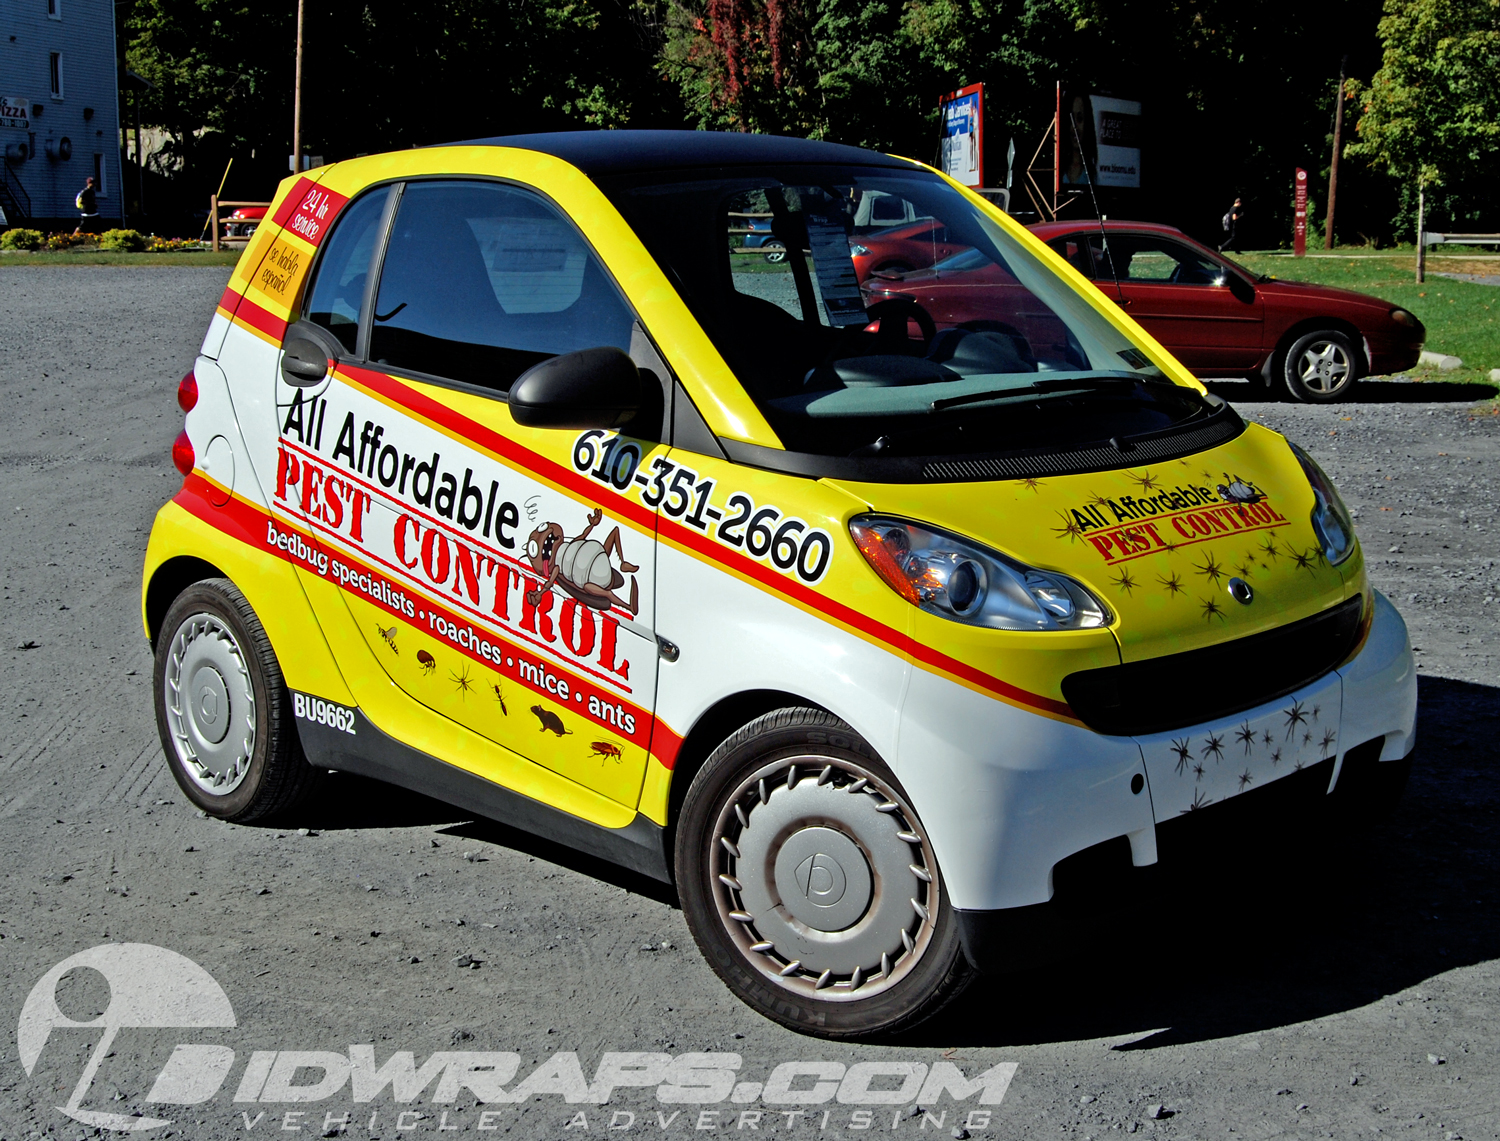 All Affordable Pest Control Smart Car 3M Yellow Vinyl Vehicle Wrap in PA